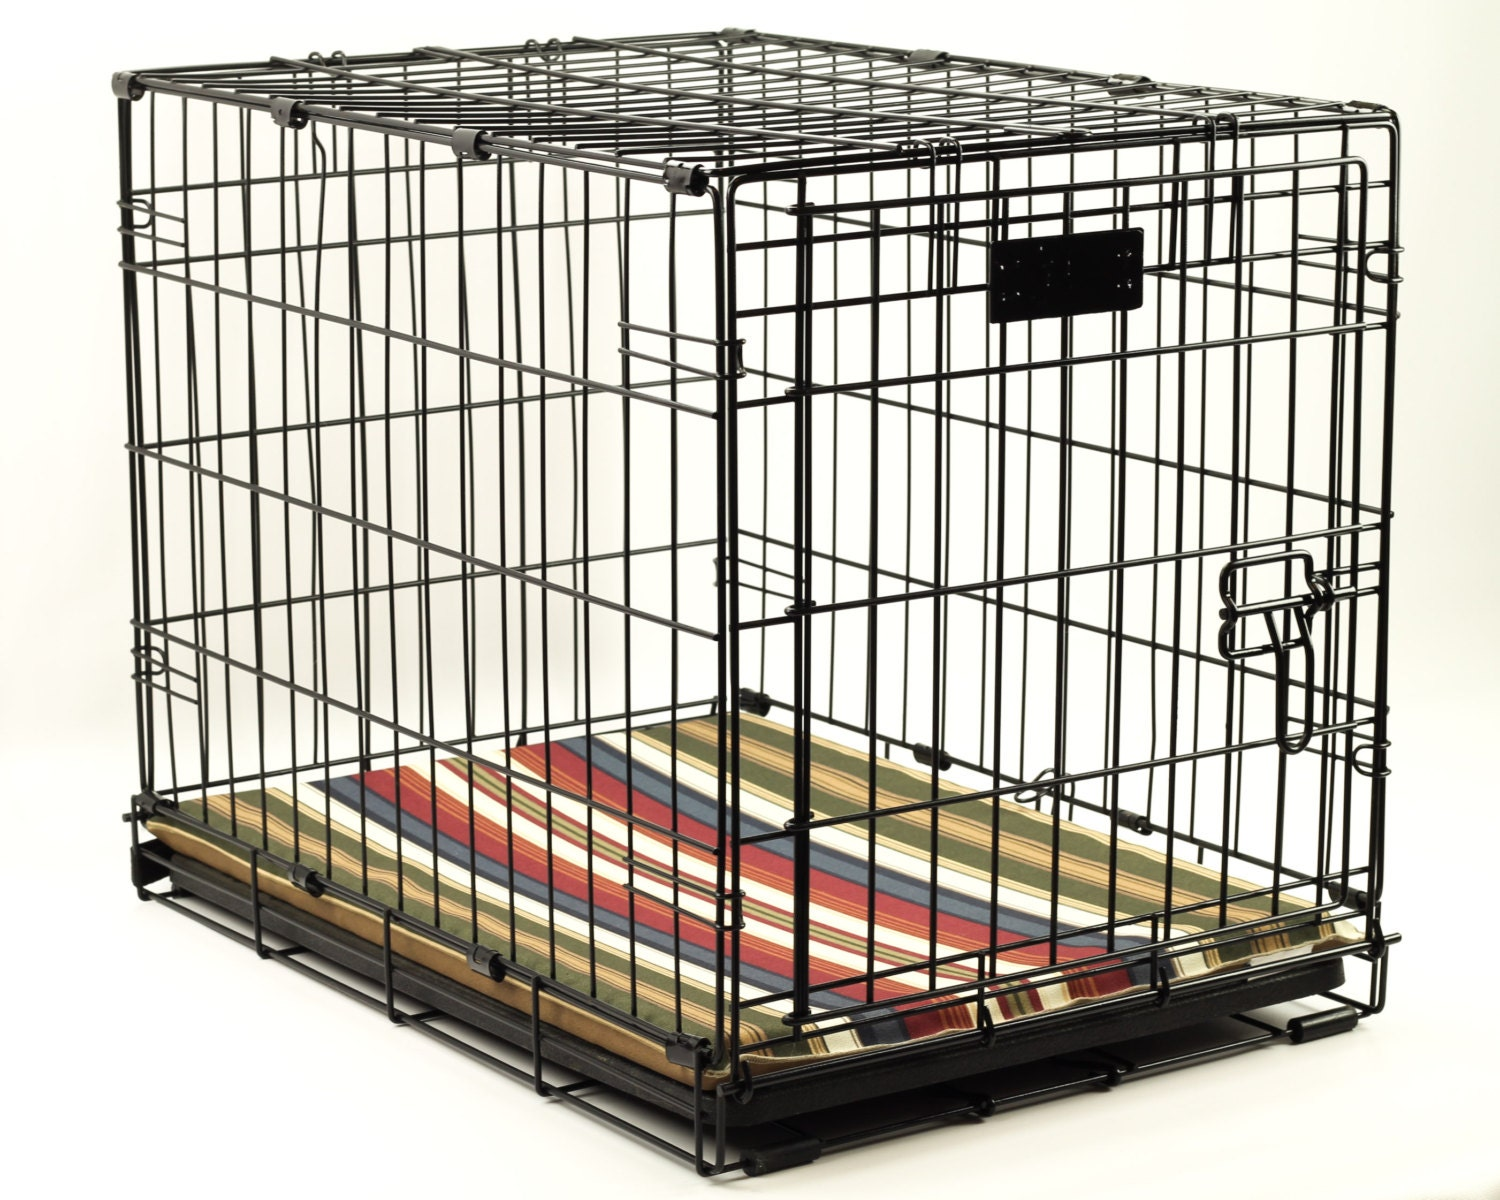 Large Waterproof Dog Crate Pad 42x28 Choose Your Fabric